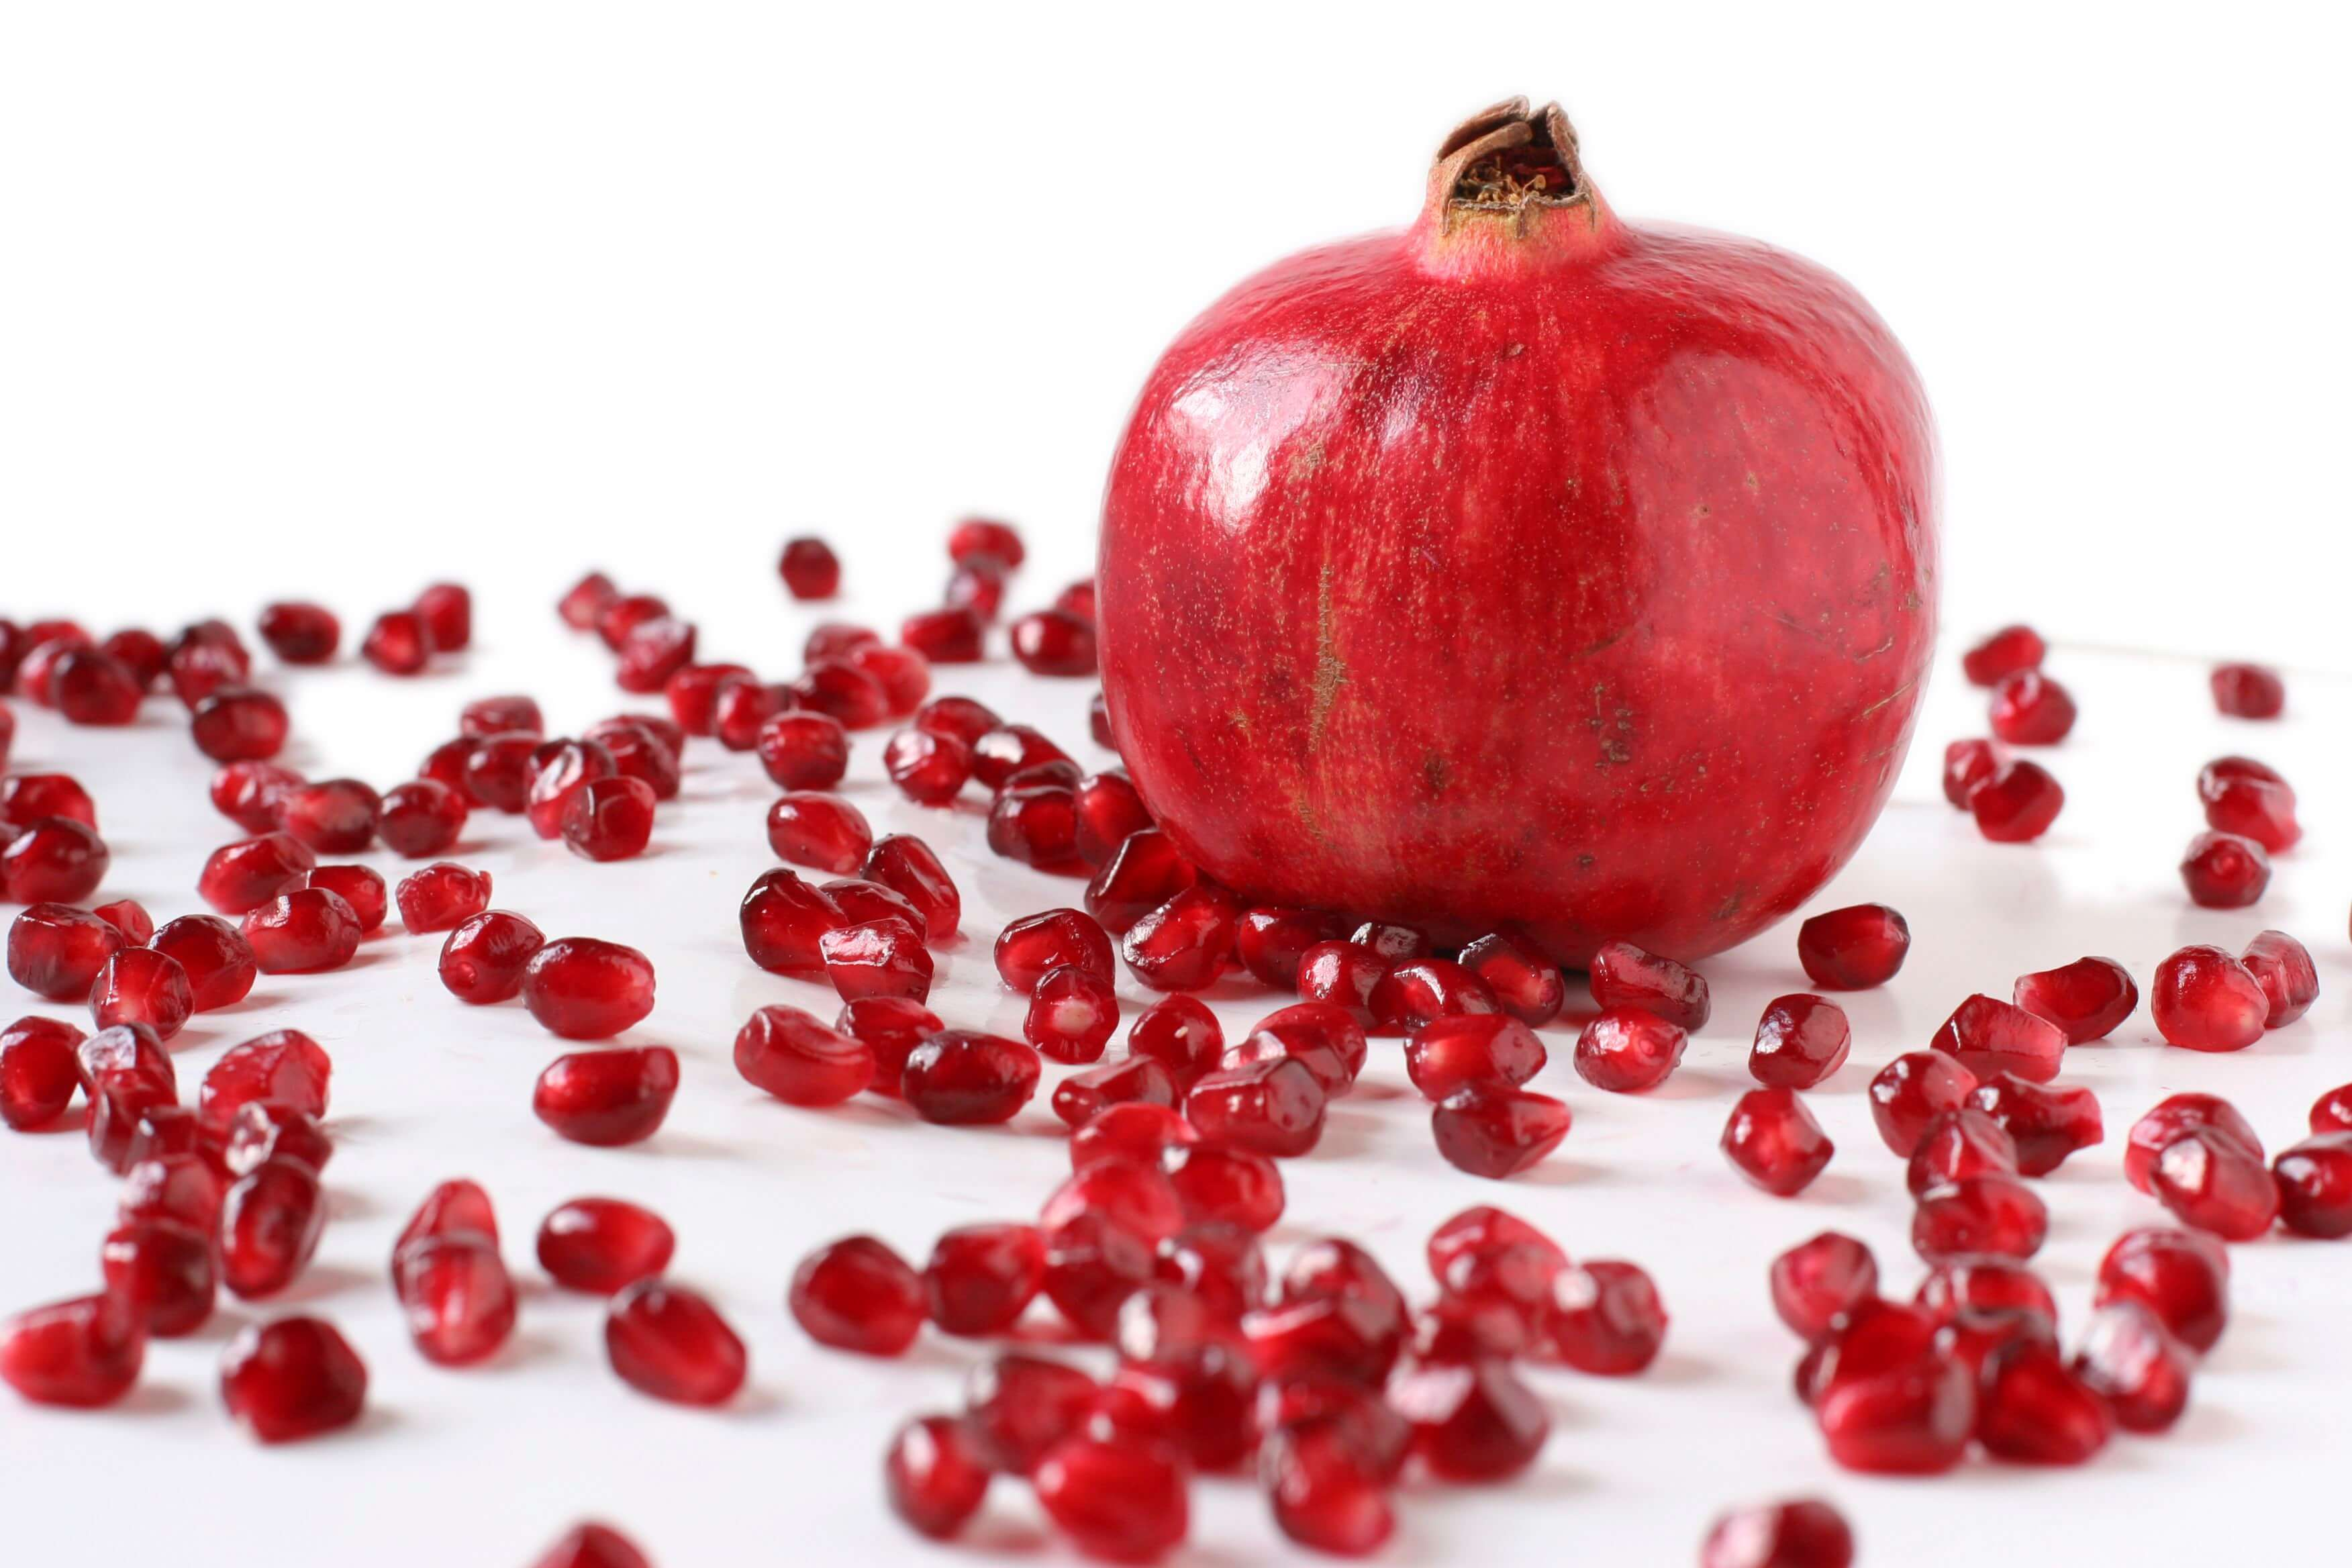 What is Pomegrante